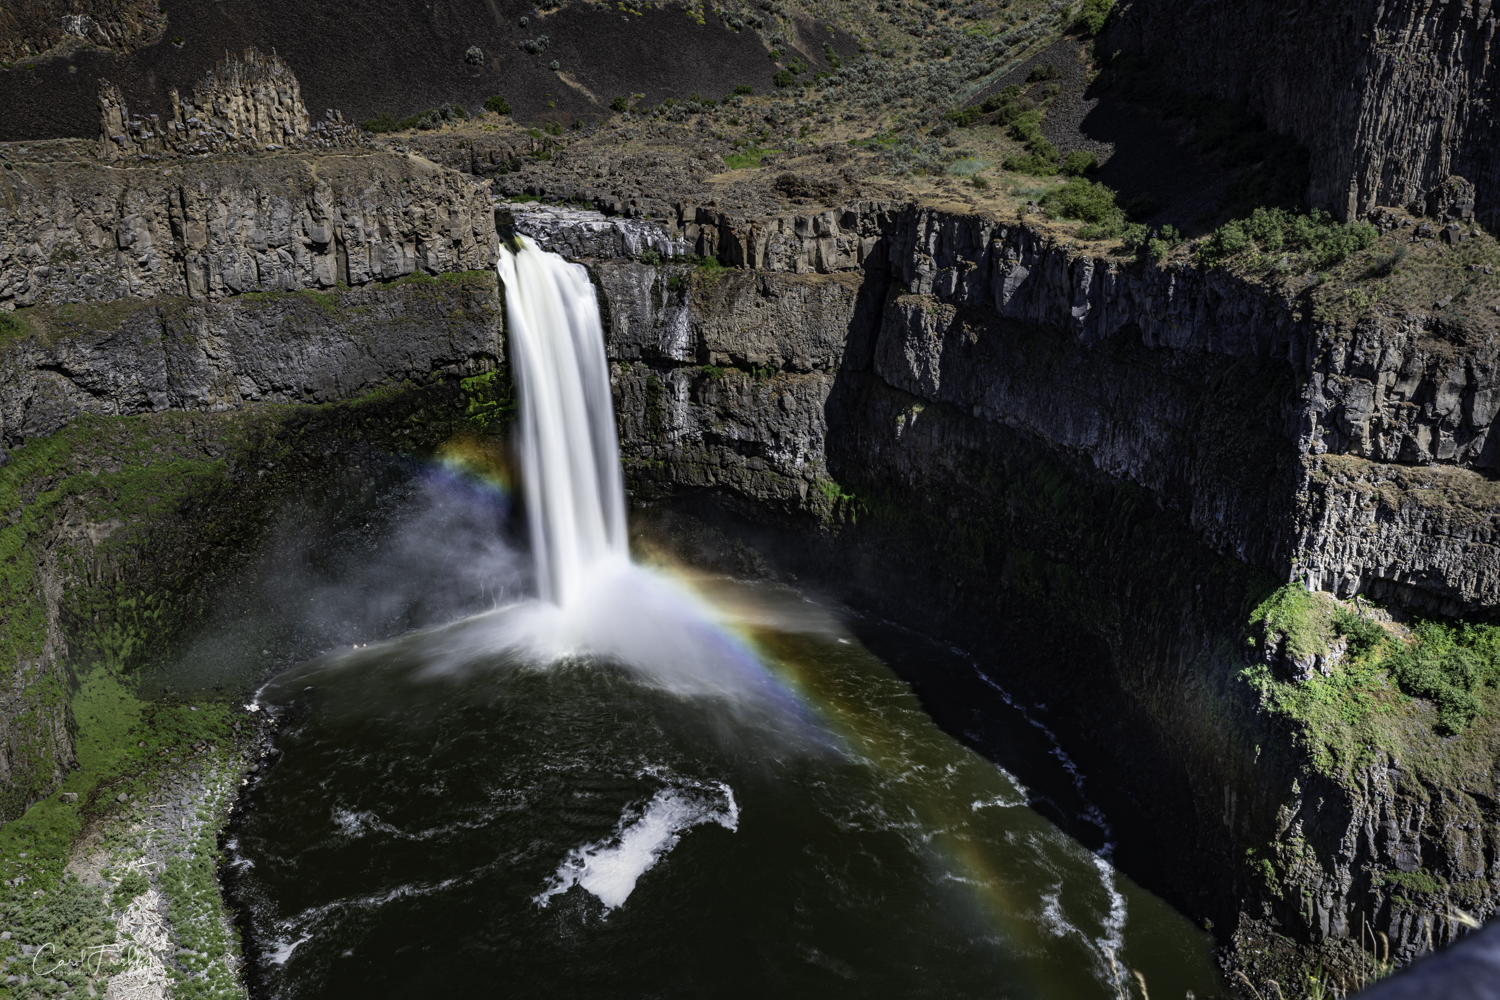 We have been to Palouse Falls before and have never seen a the rainbow.  It was a very nice surprise!